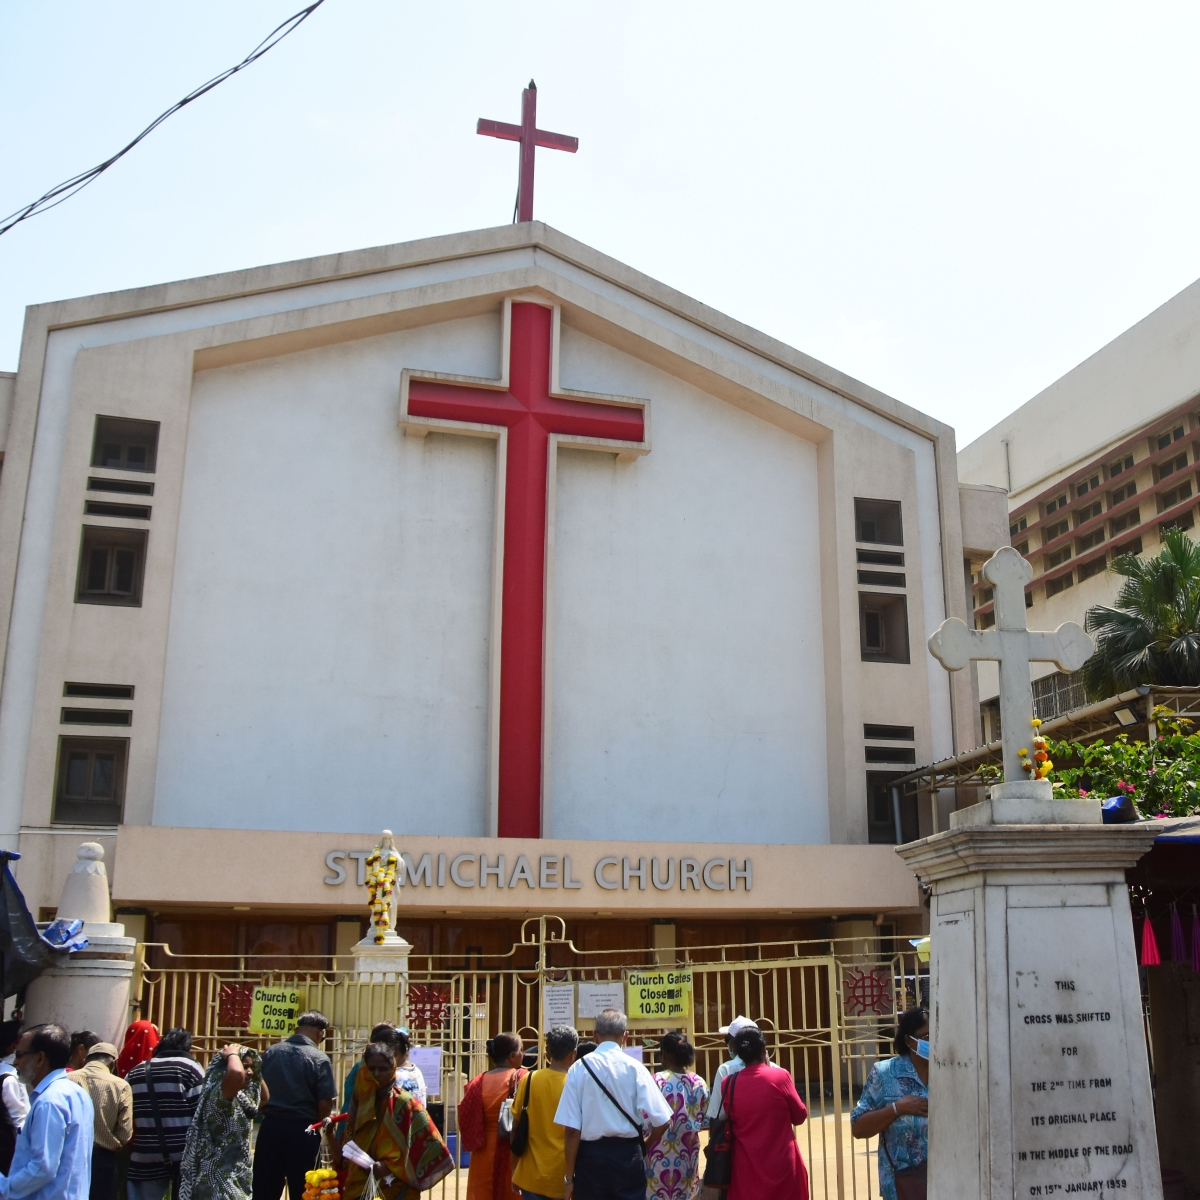 Corona scare: Public masses in churches across the city suspended till April 4